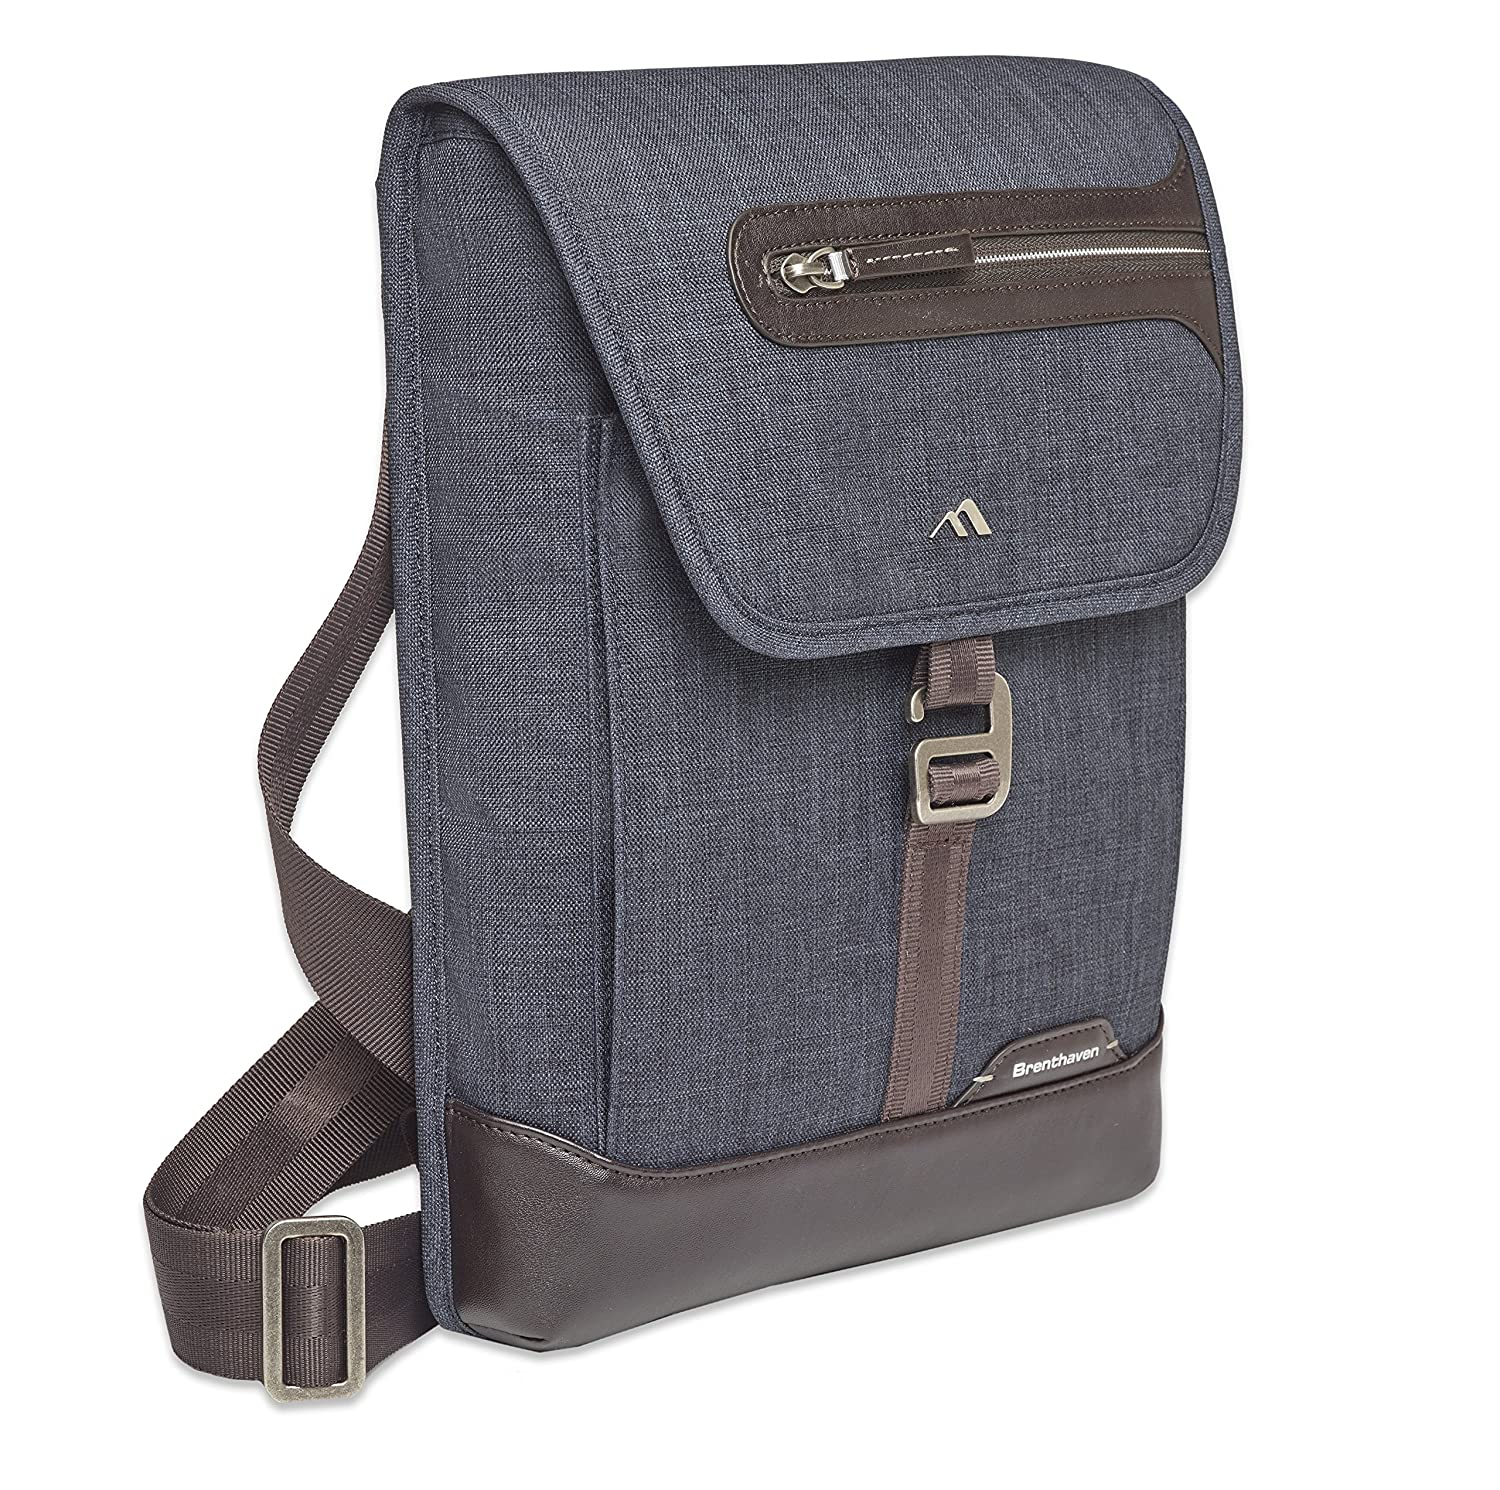 2af9e6caa2 Brenthaven 1957 Graphite Grey Collins Vertical Messenger Bag for 13 inch  Tablet Laptop Mac iPad  Amazon.co.uk  Computers   Accessories